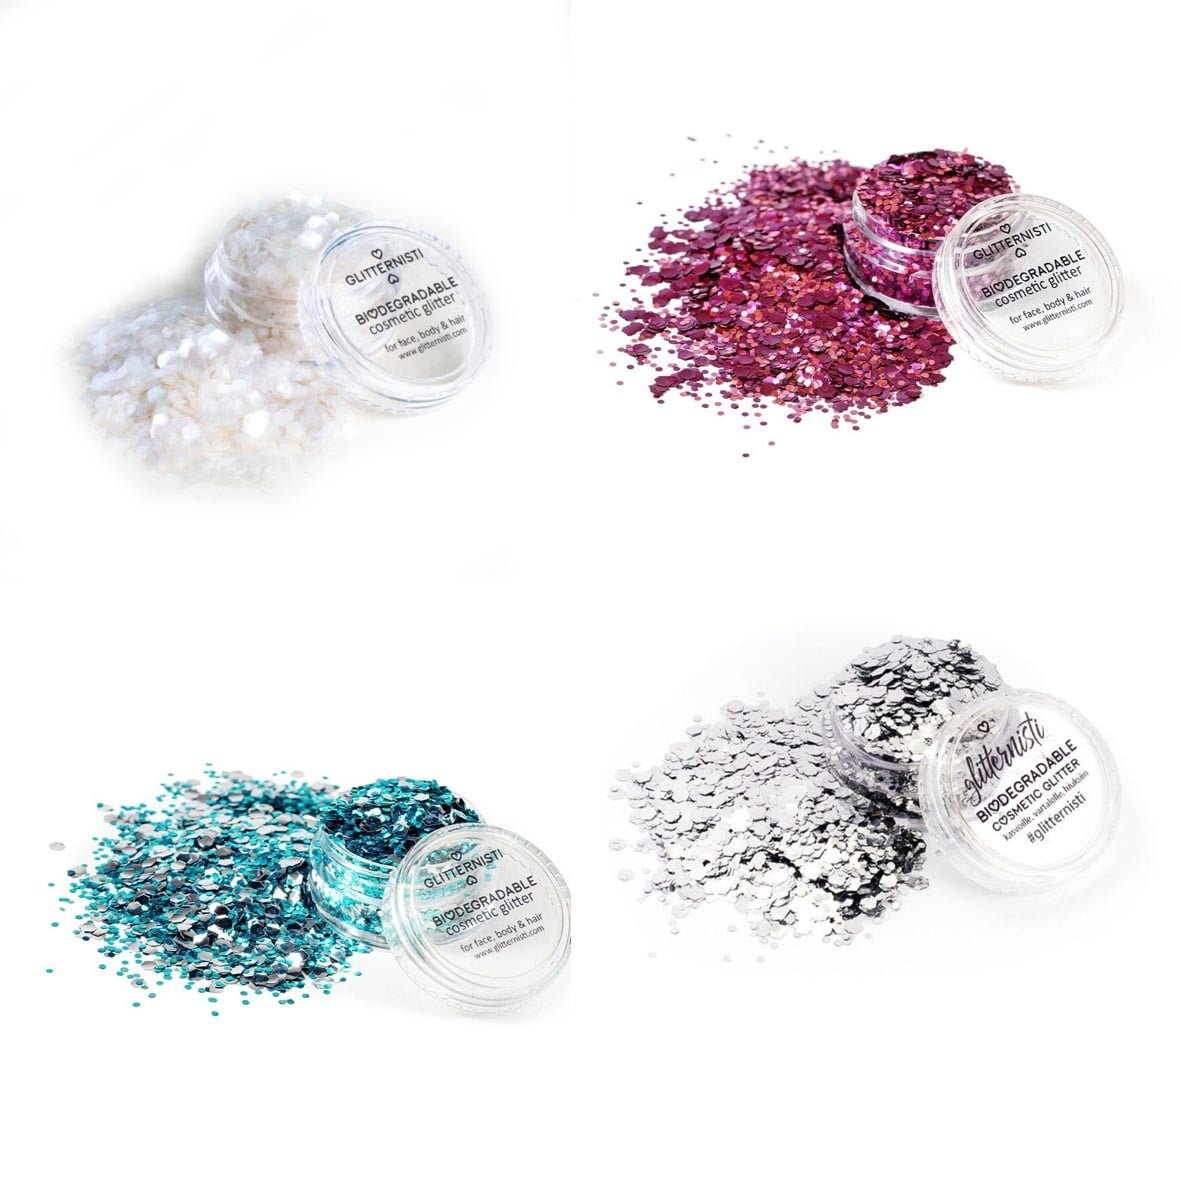 Eco Fall Glitter set includes four cosmetic glitters.